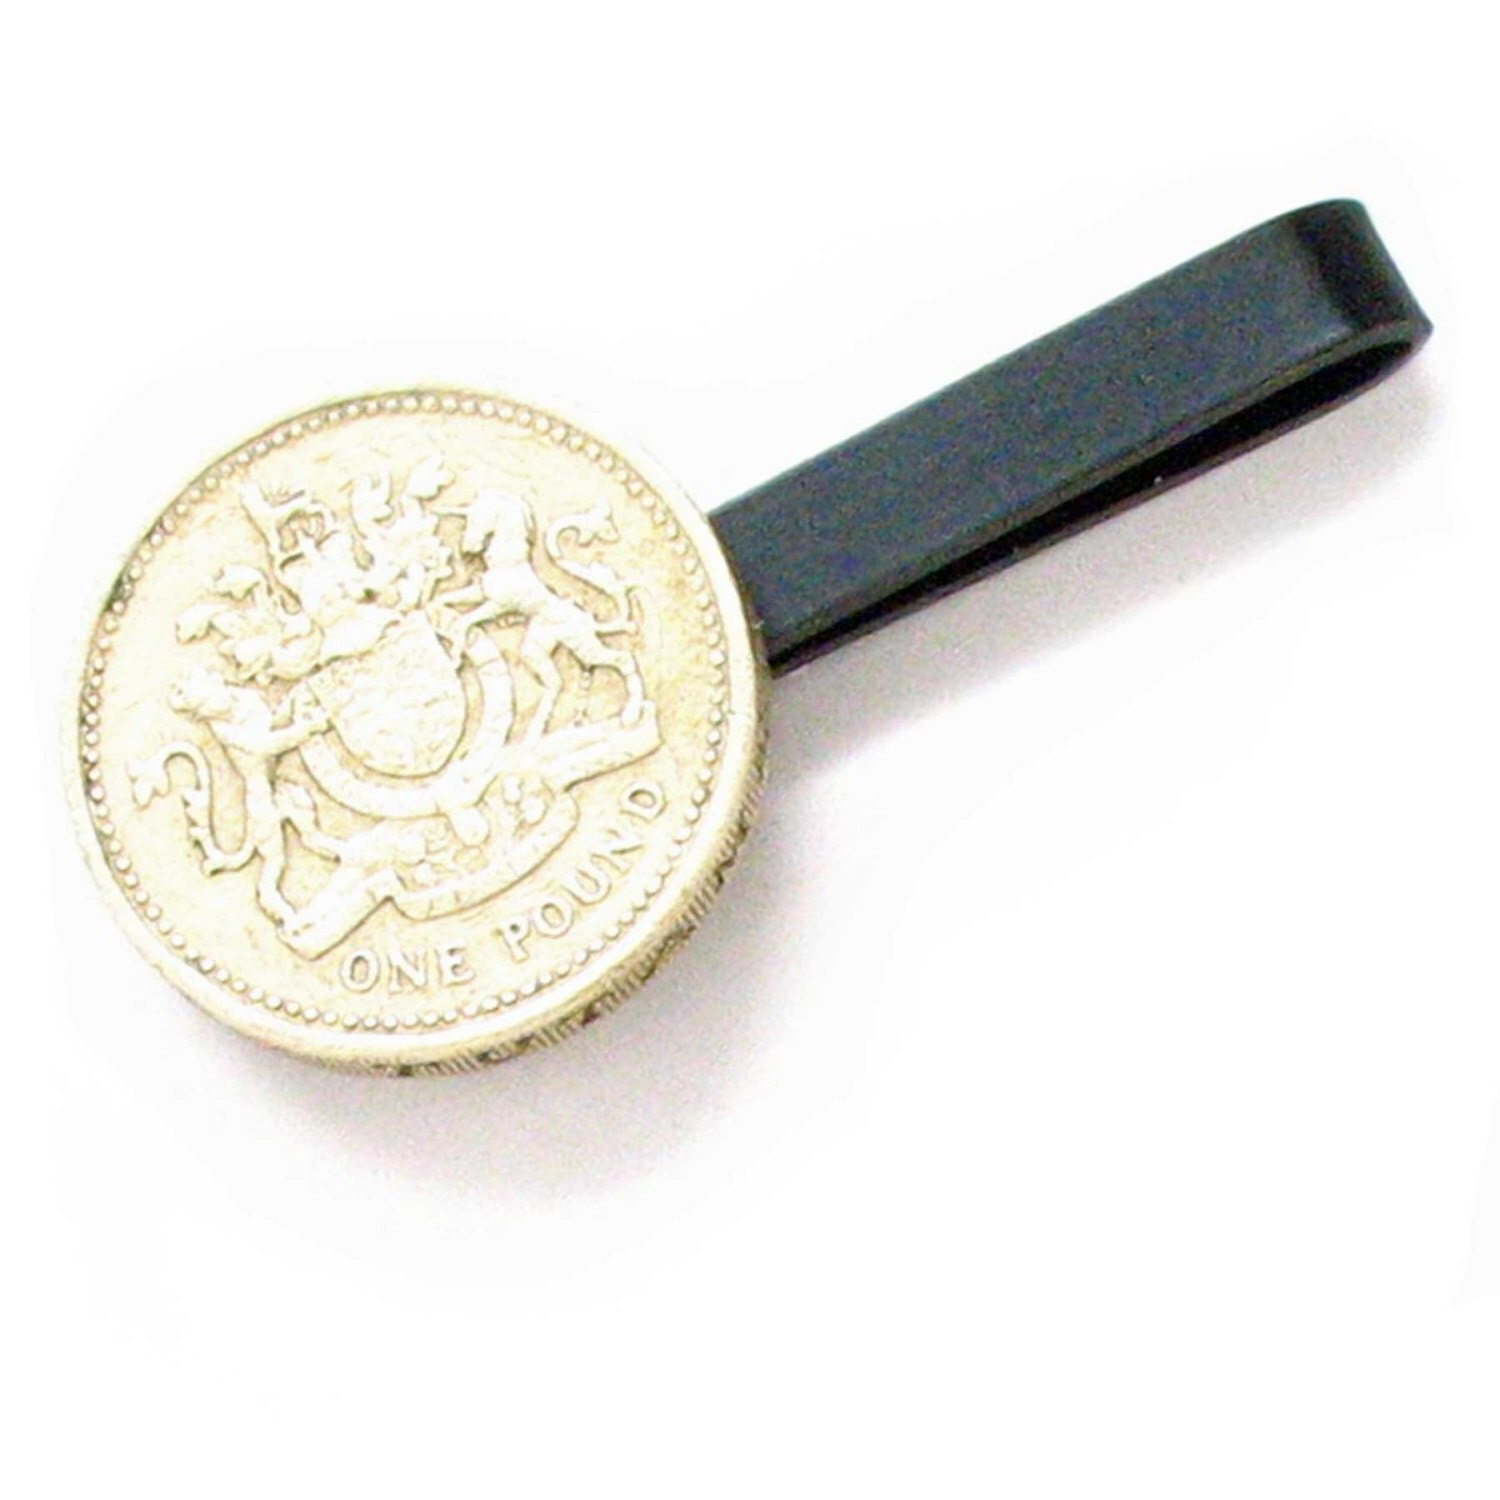 british crest tie bar clip coin crest tiebar tieclip money. Black Bedroom Furniture Sets. Home Design Ideas